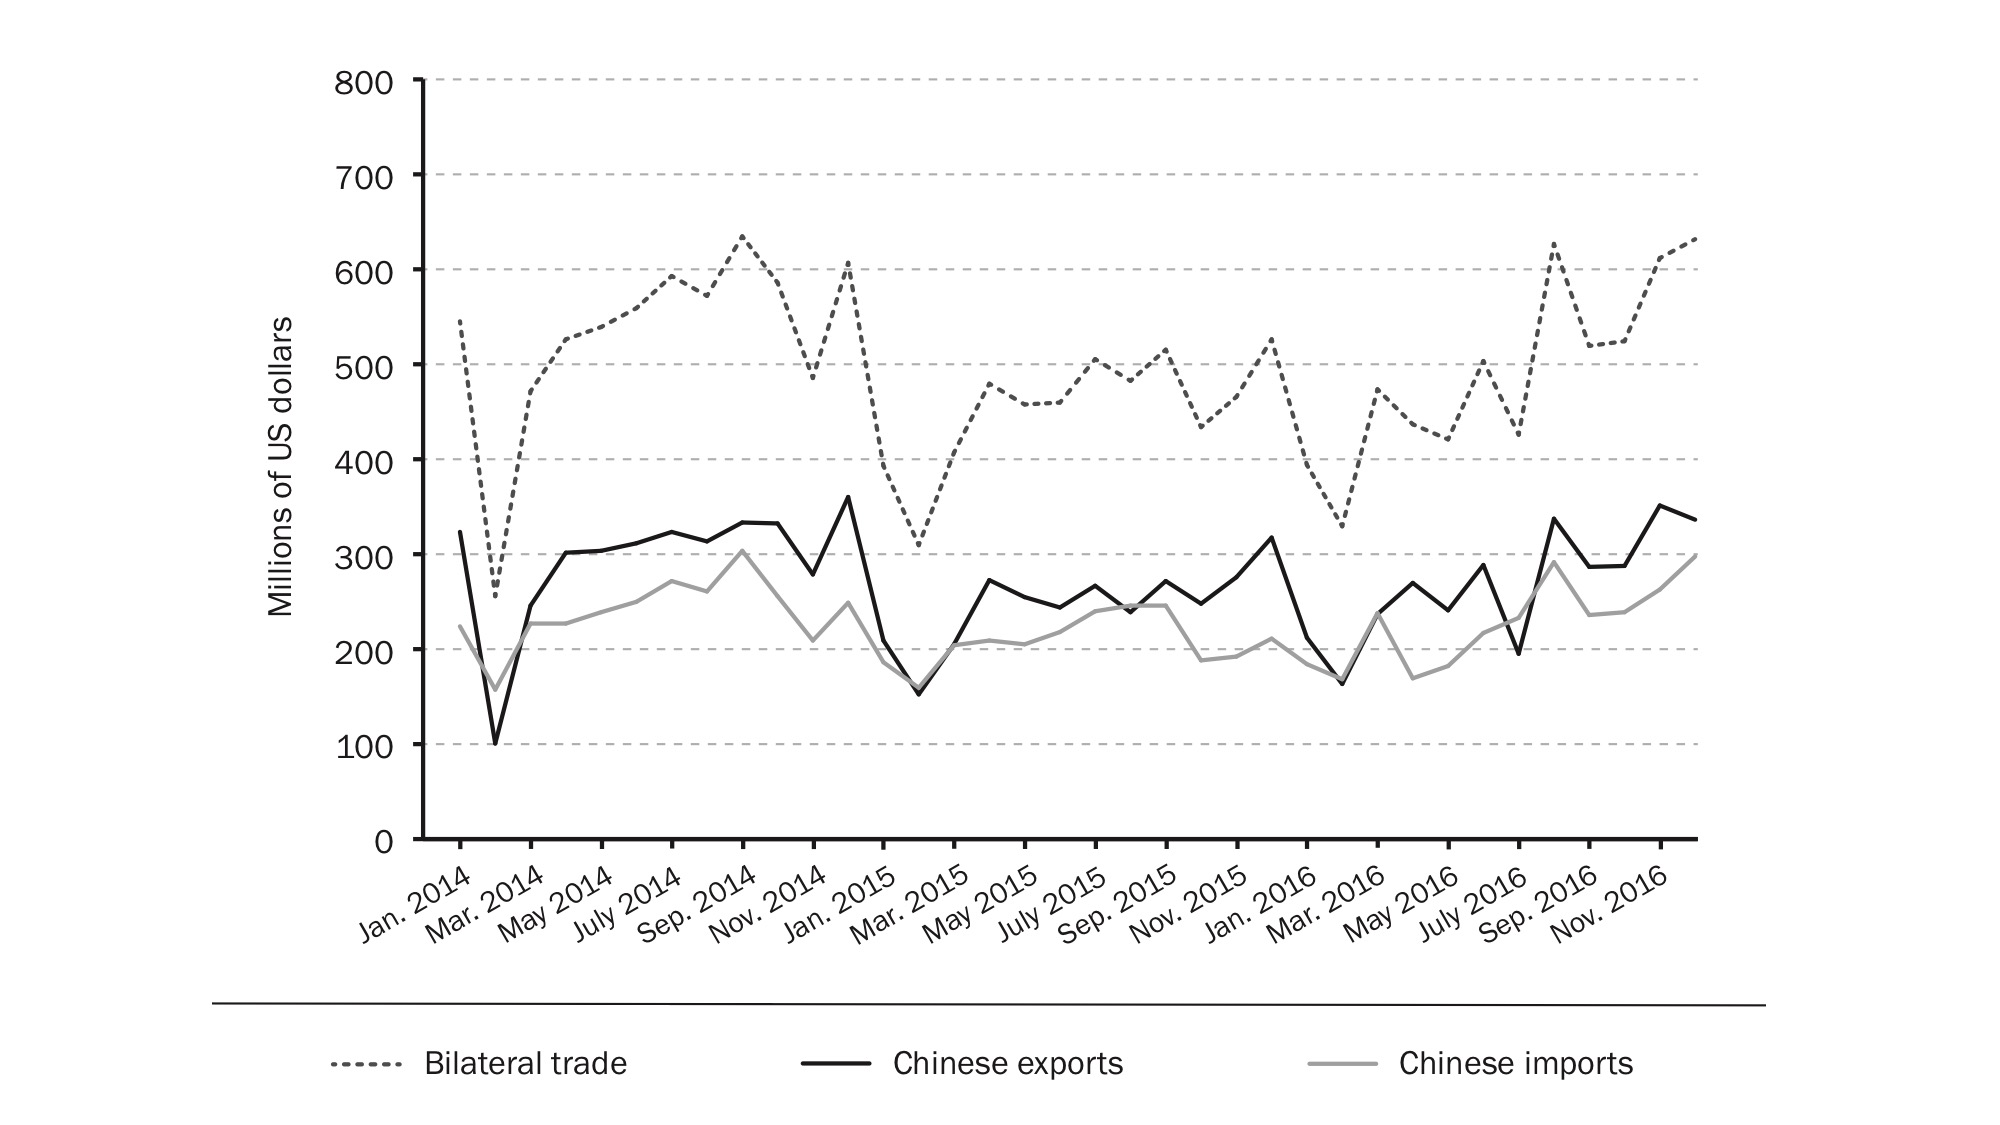 Bilateral trade volumes between China and North Korea, January 2014 to December 2016.